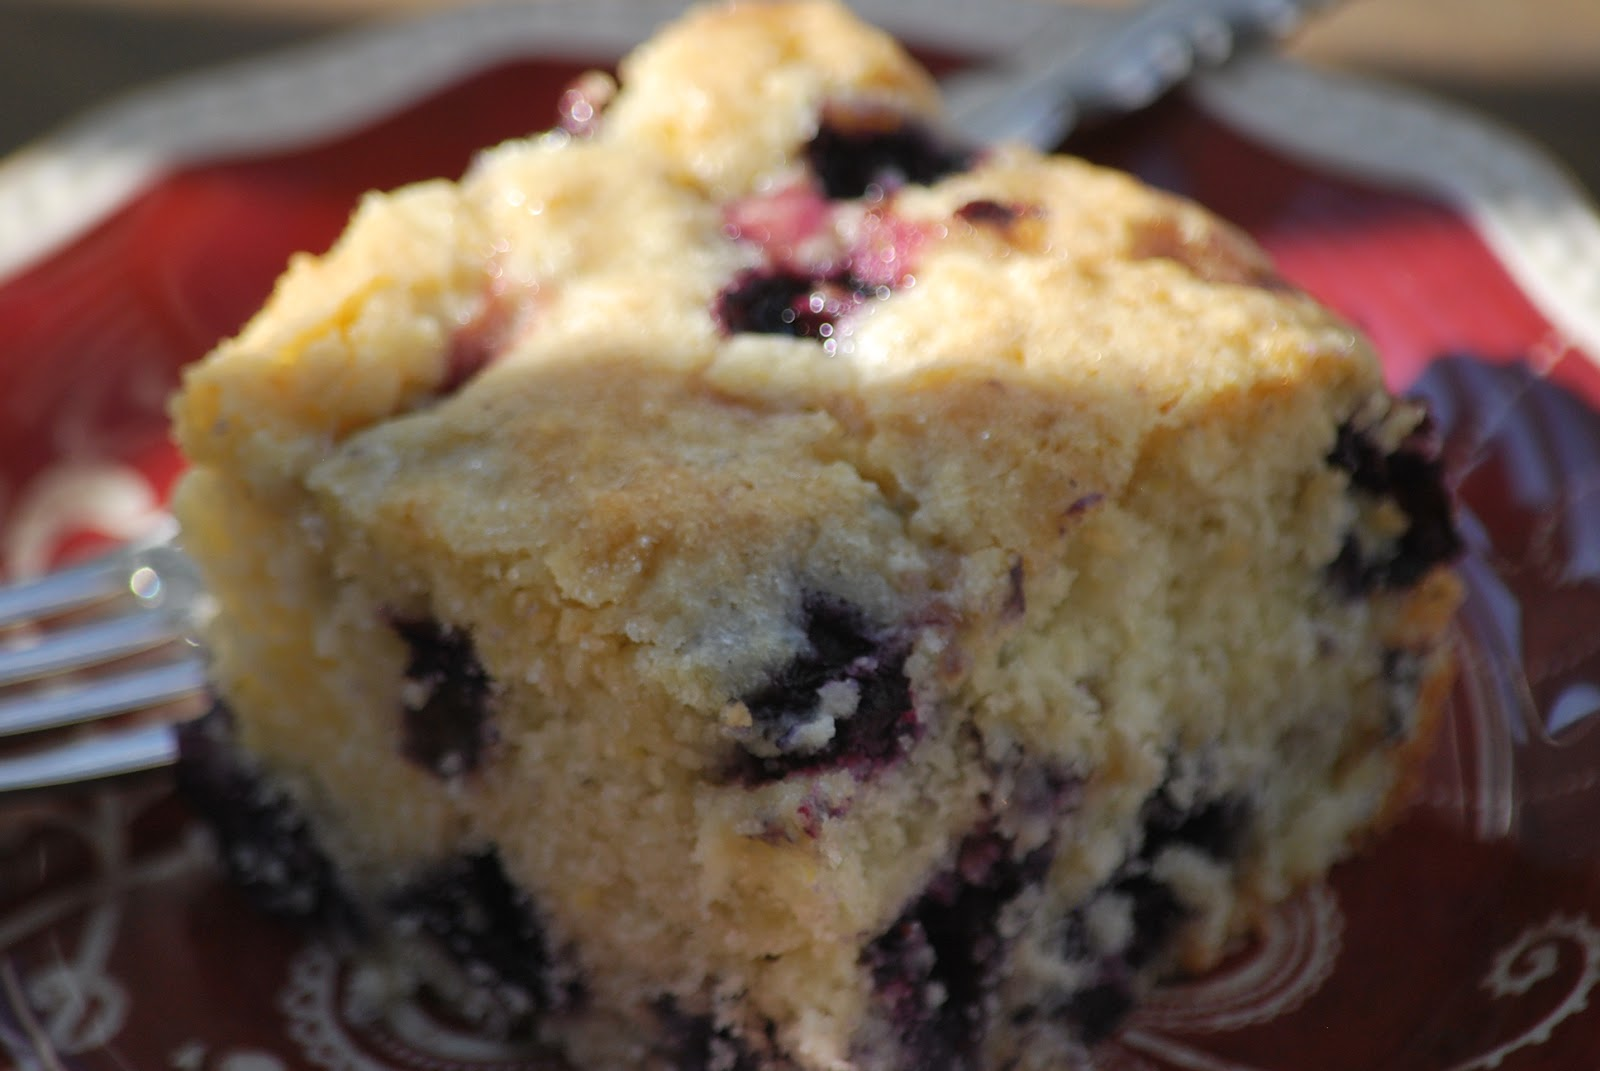 My story in recipes: Blueberry Buttermilk Coffee Cake